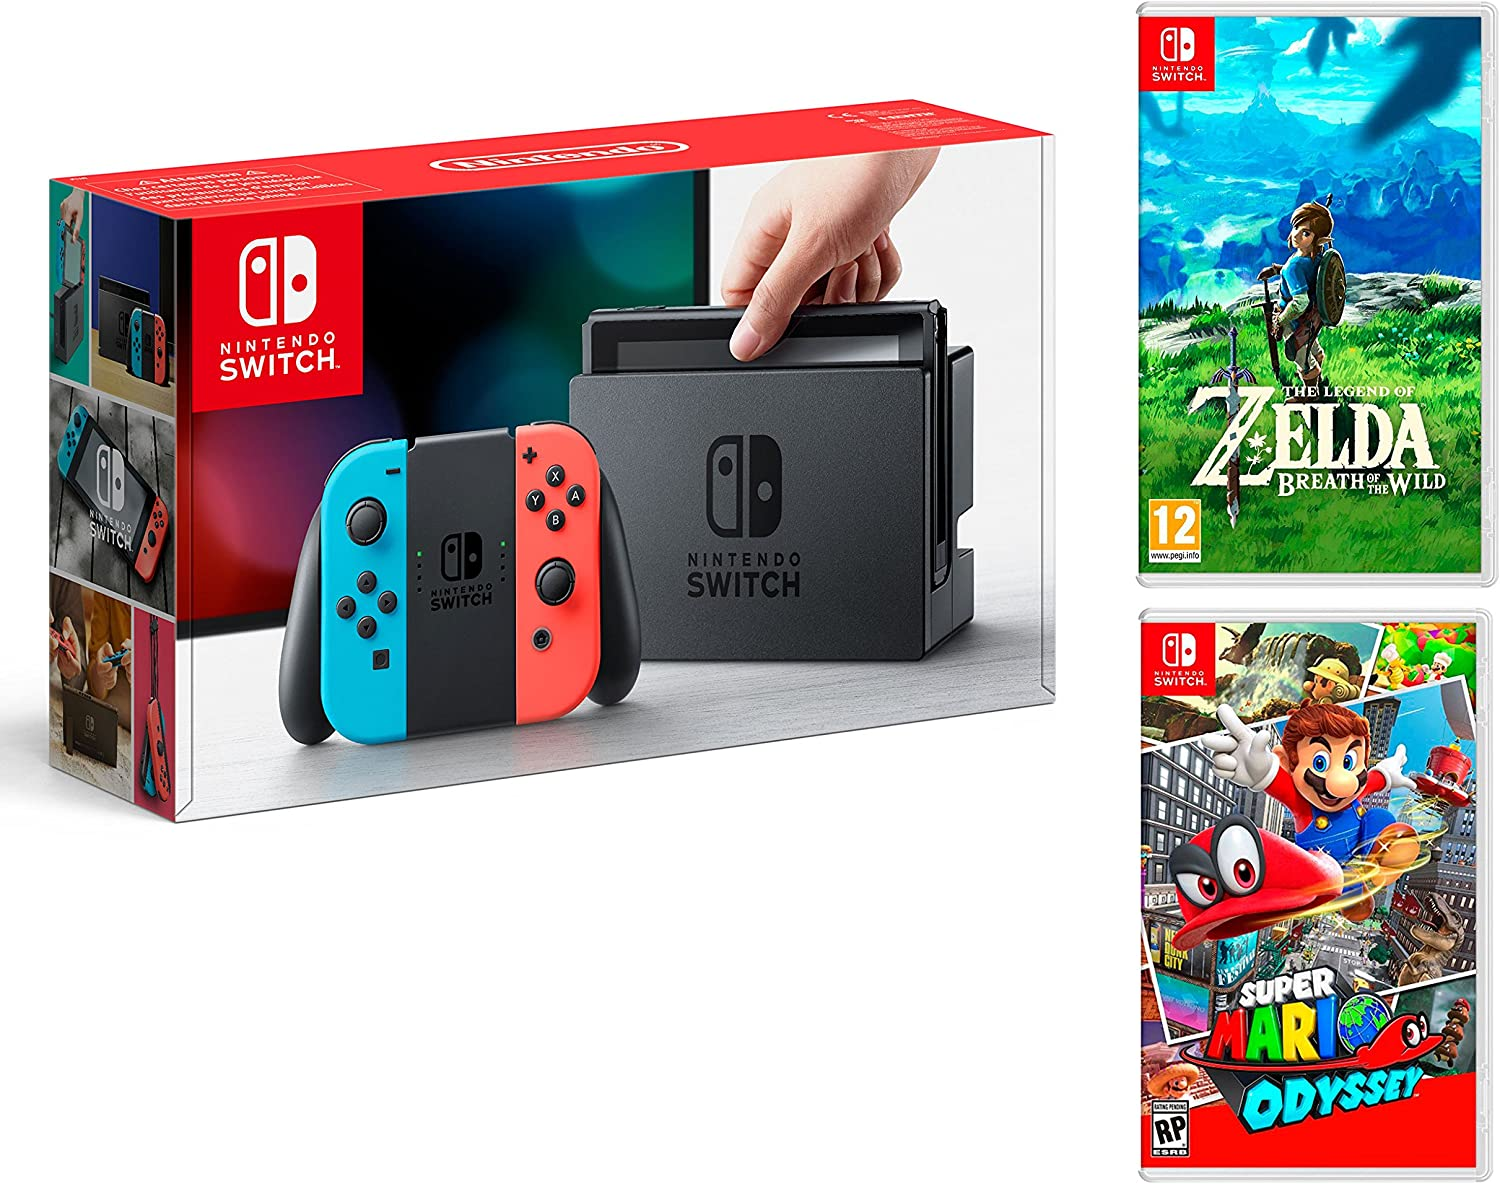 Nintendo Switch Consola 32Gb Azul/Rojo Neón + Super Mario Odyssey + Zelda: Breath of The Wild - MEGAPACK: Amazon.es: Videojuegos